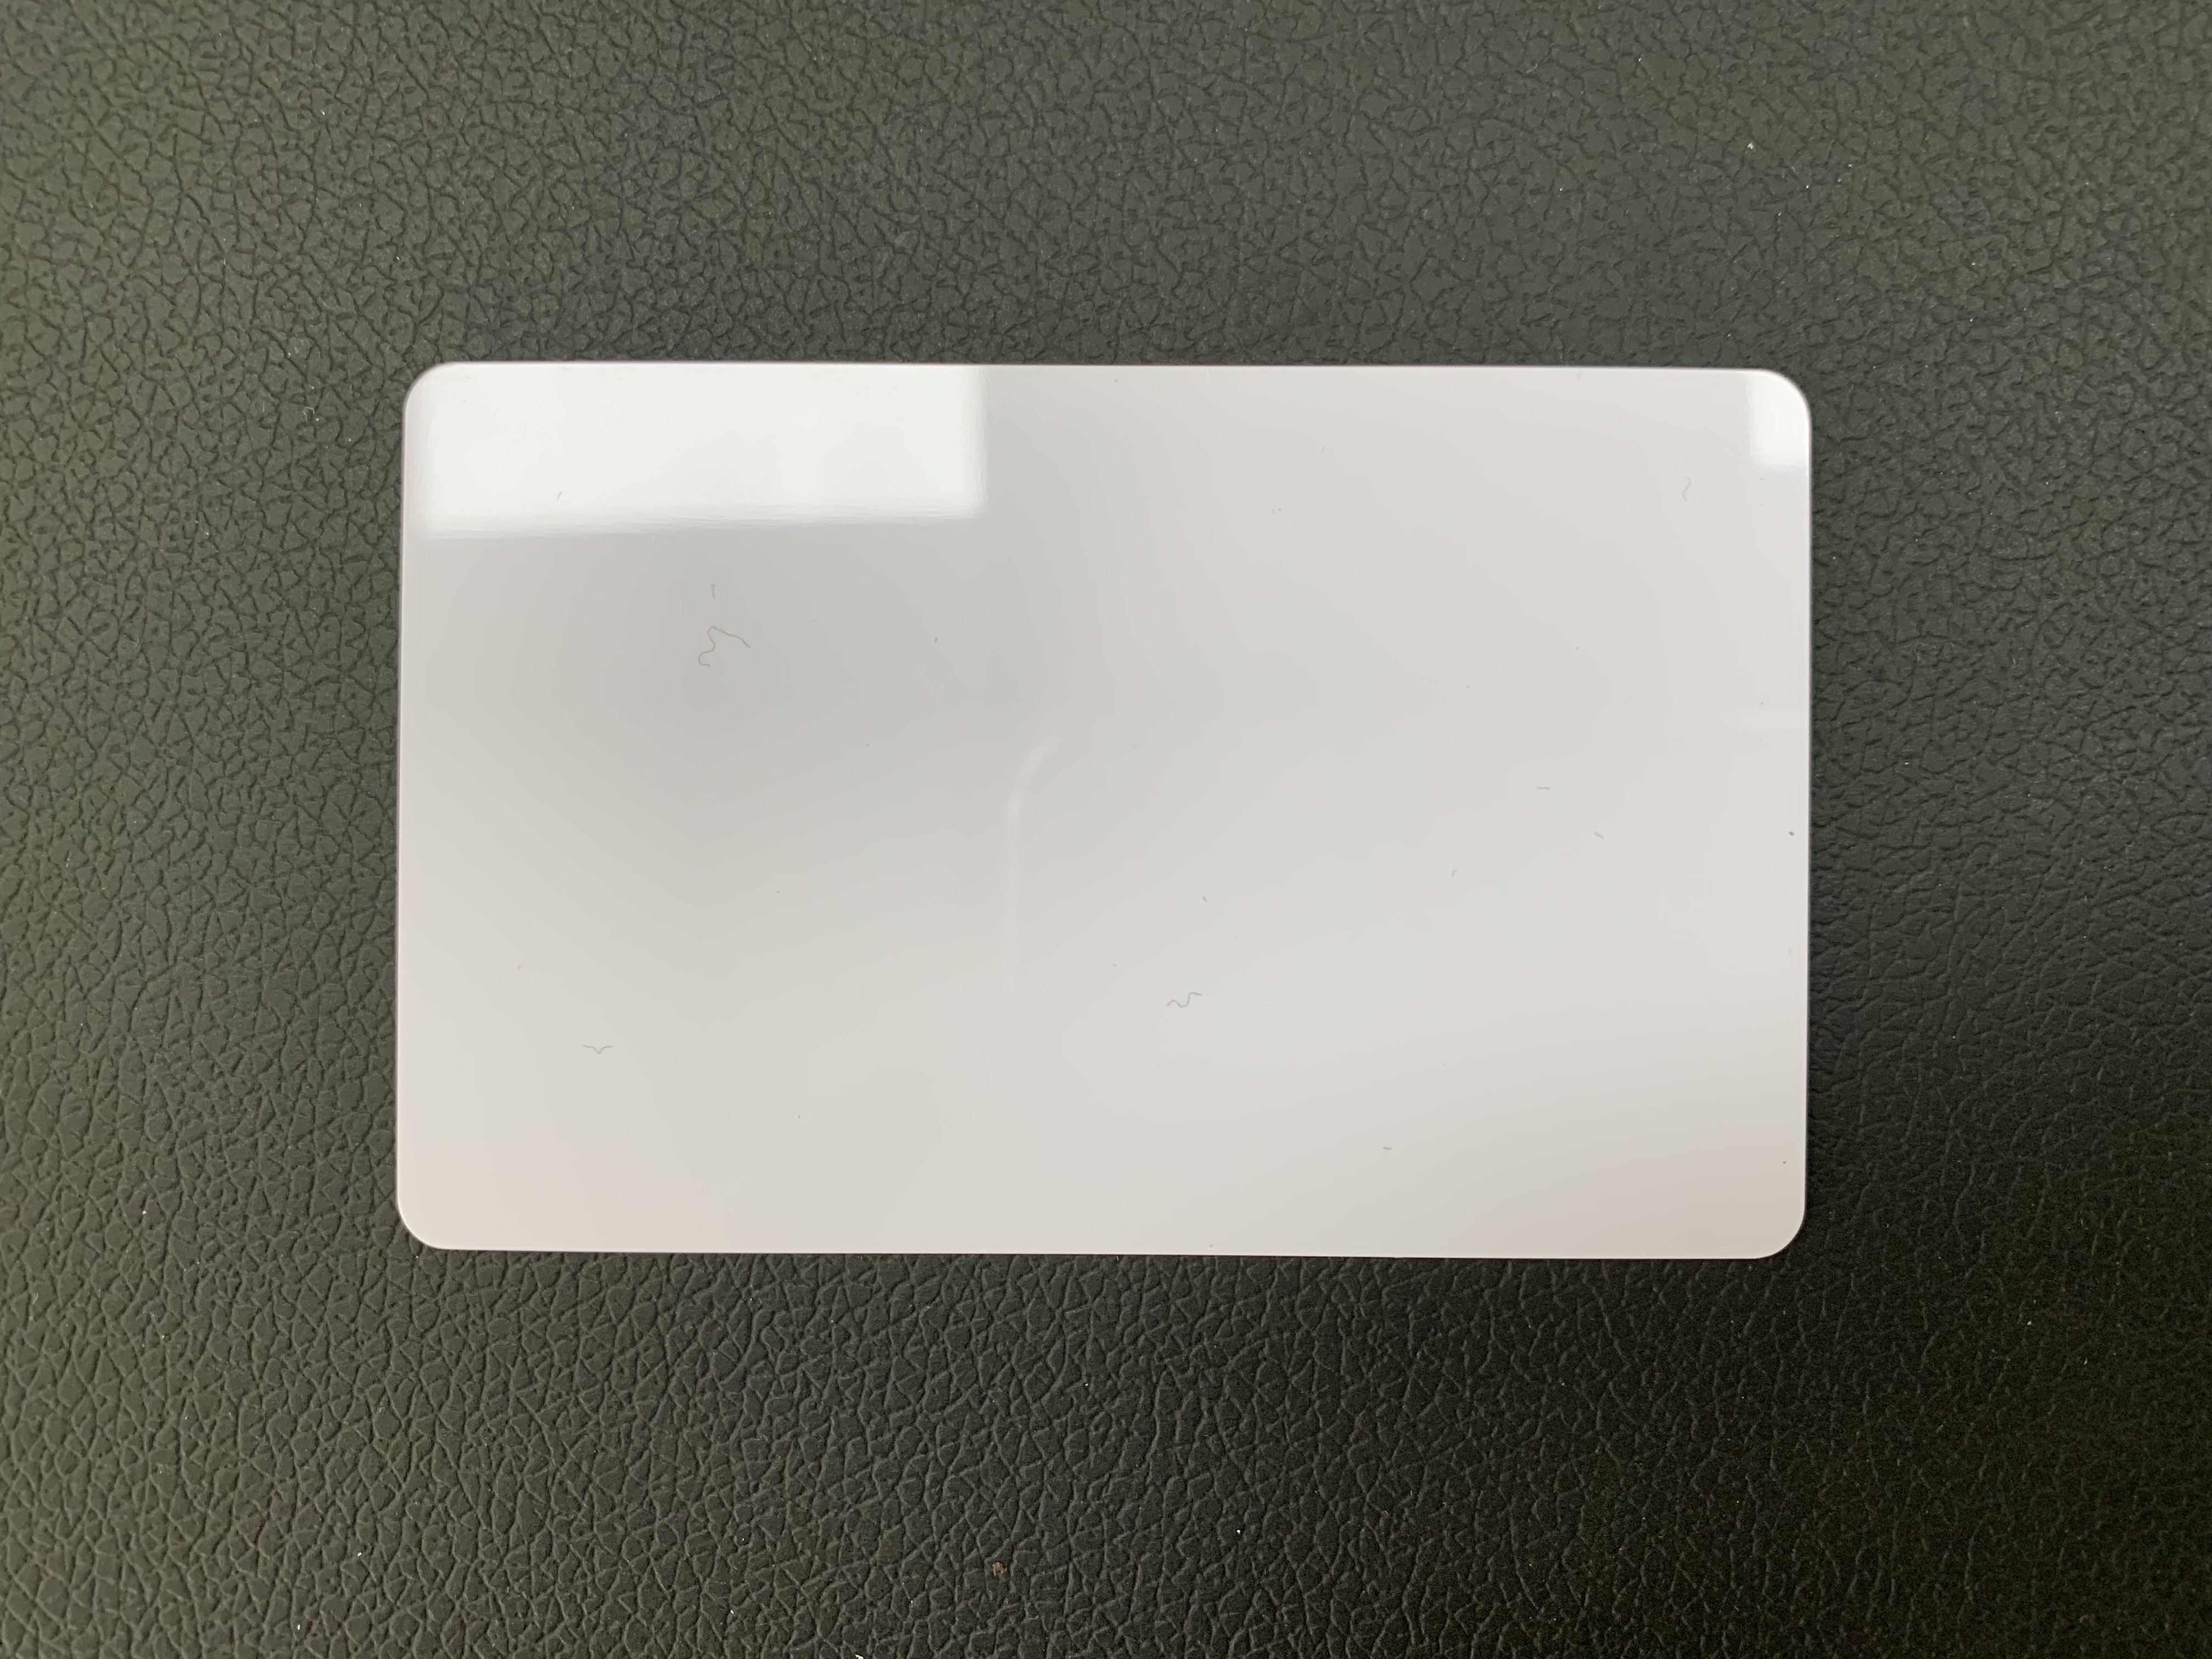 HF/ NFC 13.56MHz blank Standard RFID Card can be printed